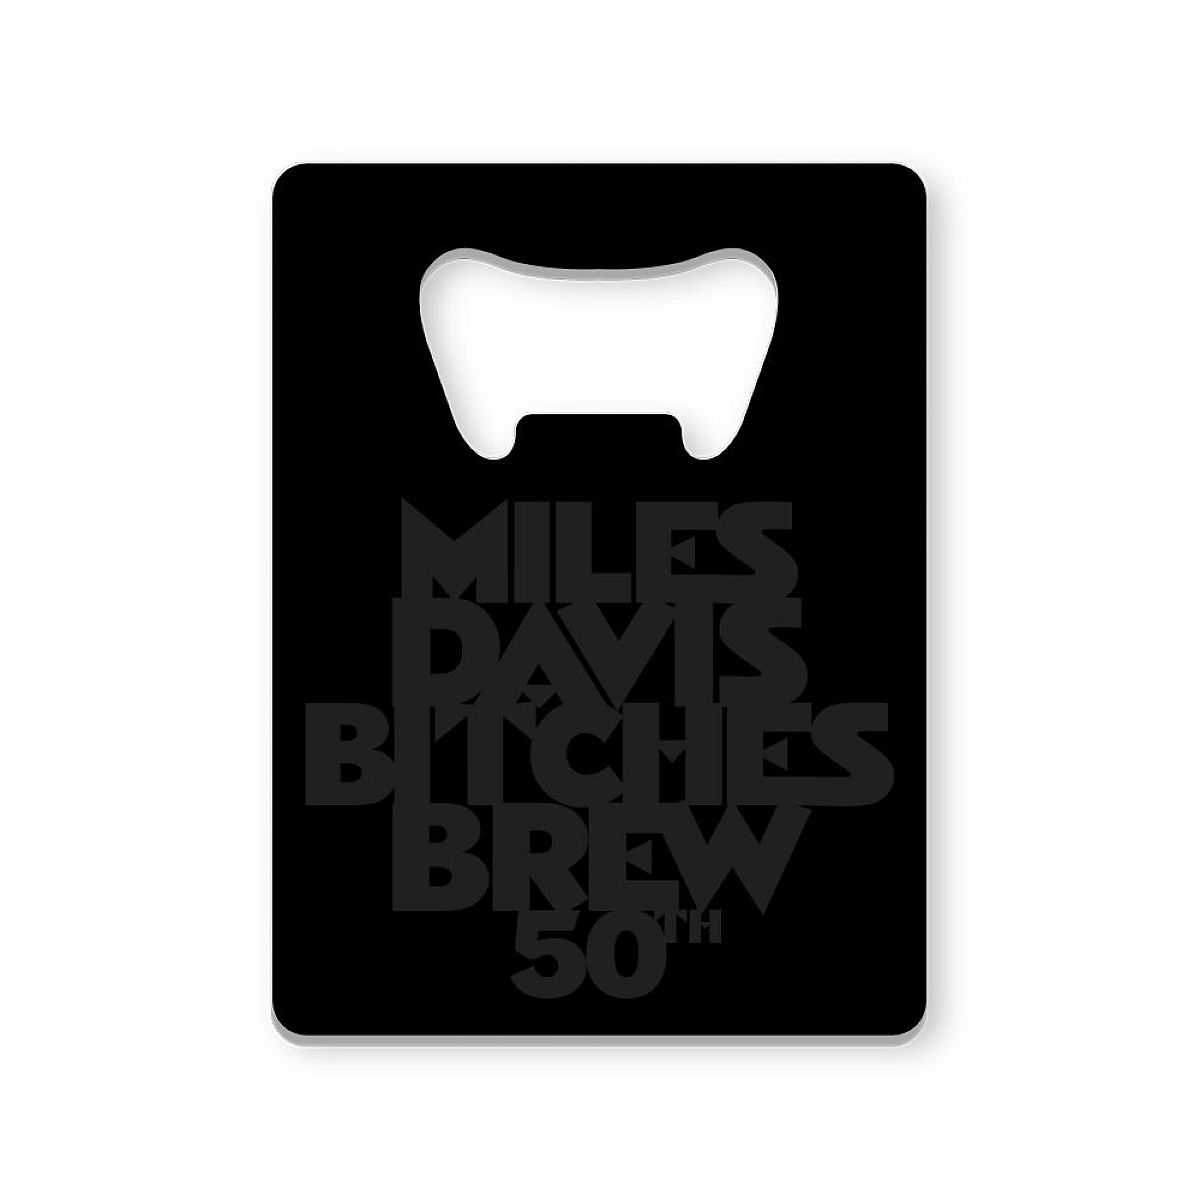 Bitches Brew 50 Stainless Steel Bottle Opener